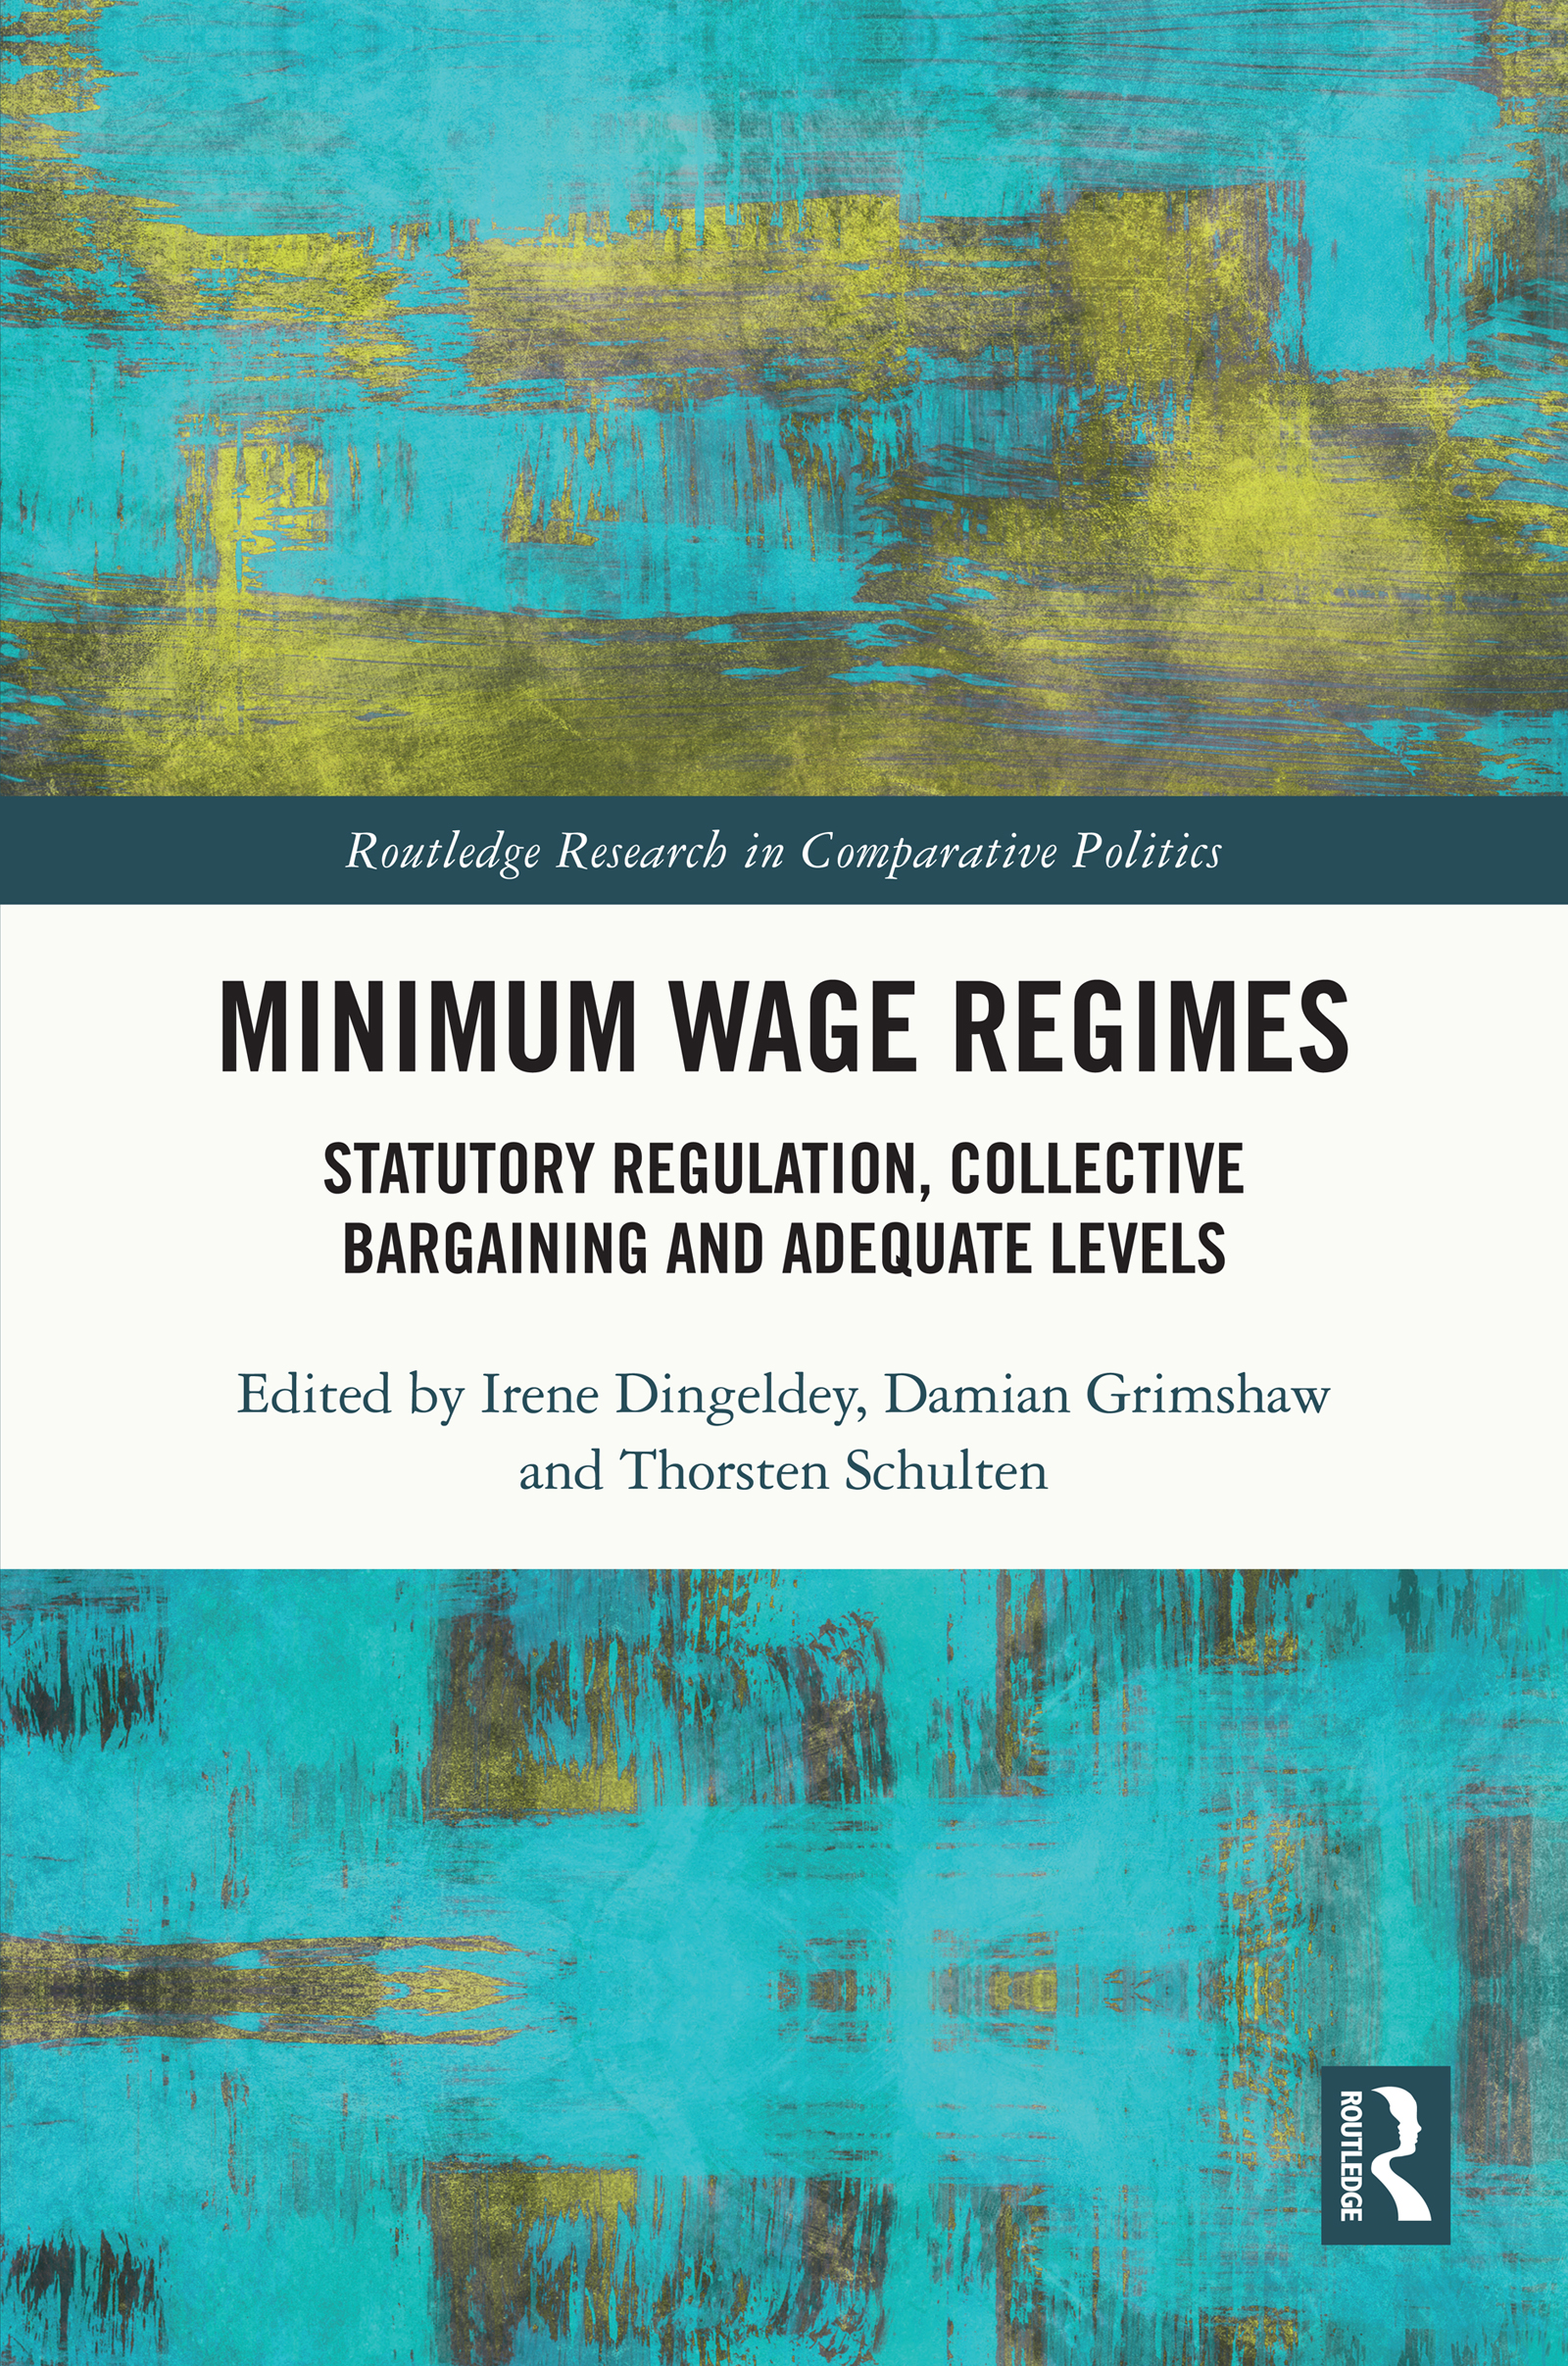 Minimum wages in Southern Europe